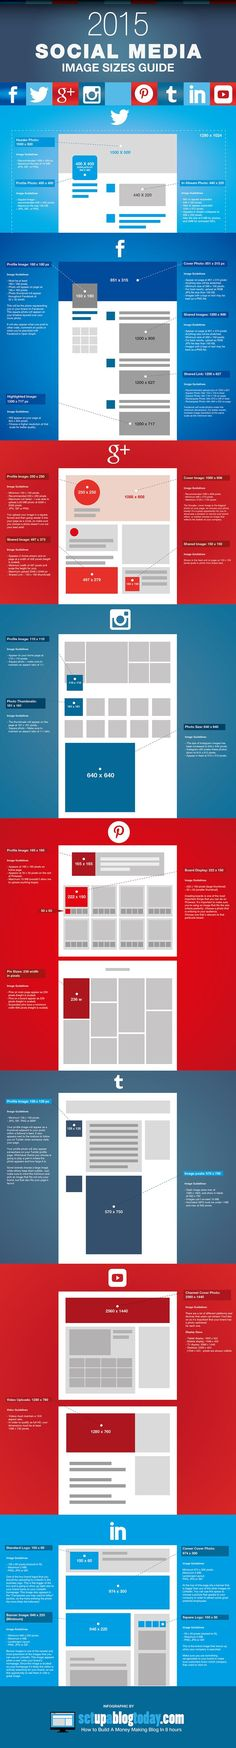 From Facebook to Google+, this ‪#‎socialmedia‬ image size guide gives you the exact dimensions for the top 8 social networks! PLUS best practices and strategies. via http://rebekahradice.com/social-media-image-sizes/ (scheduled via http://www.tailwindapp.com?utm_source=pinterest&utm_medium=twpin&utm_content=post1536401&utm_campaign=scheduler_attribution)